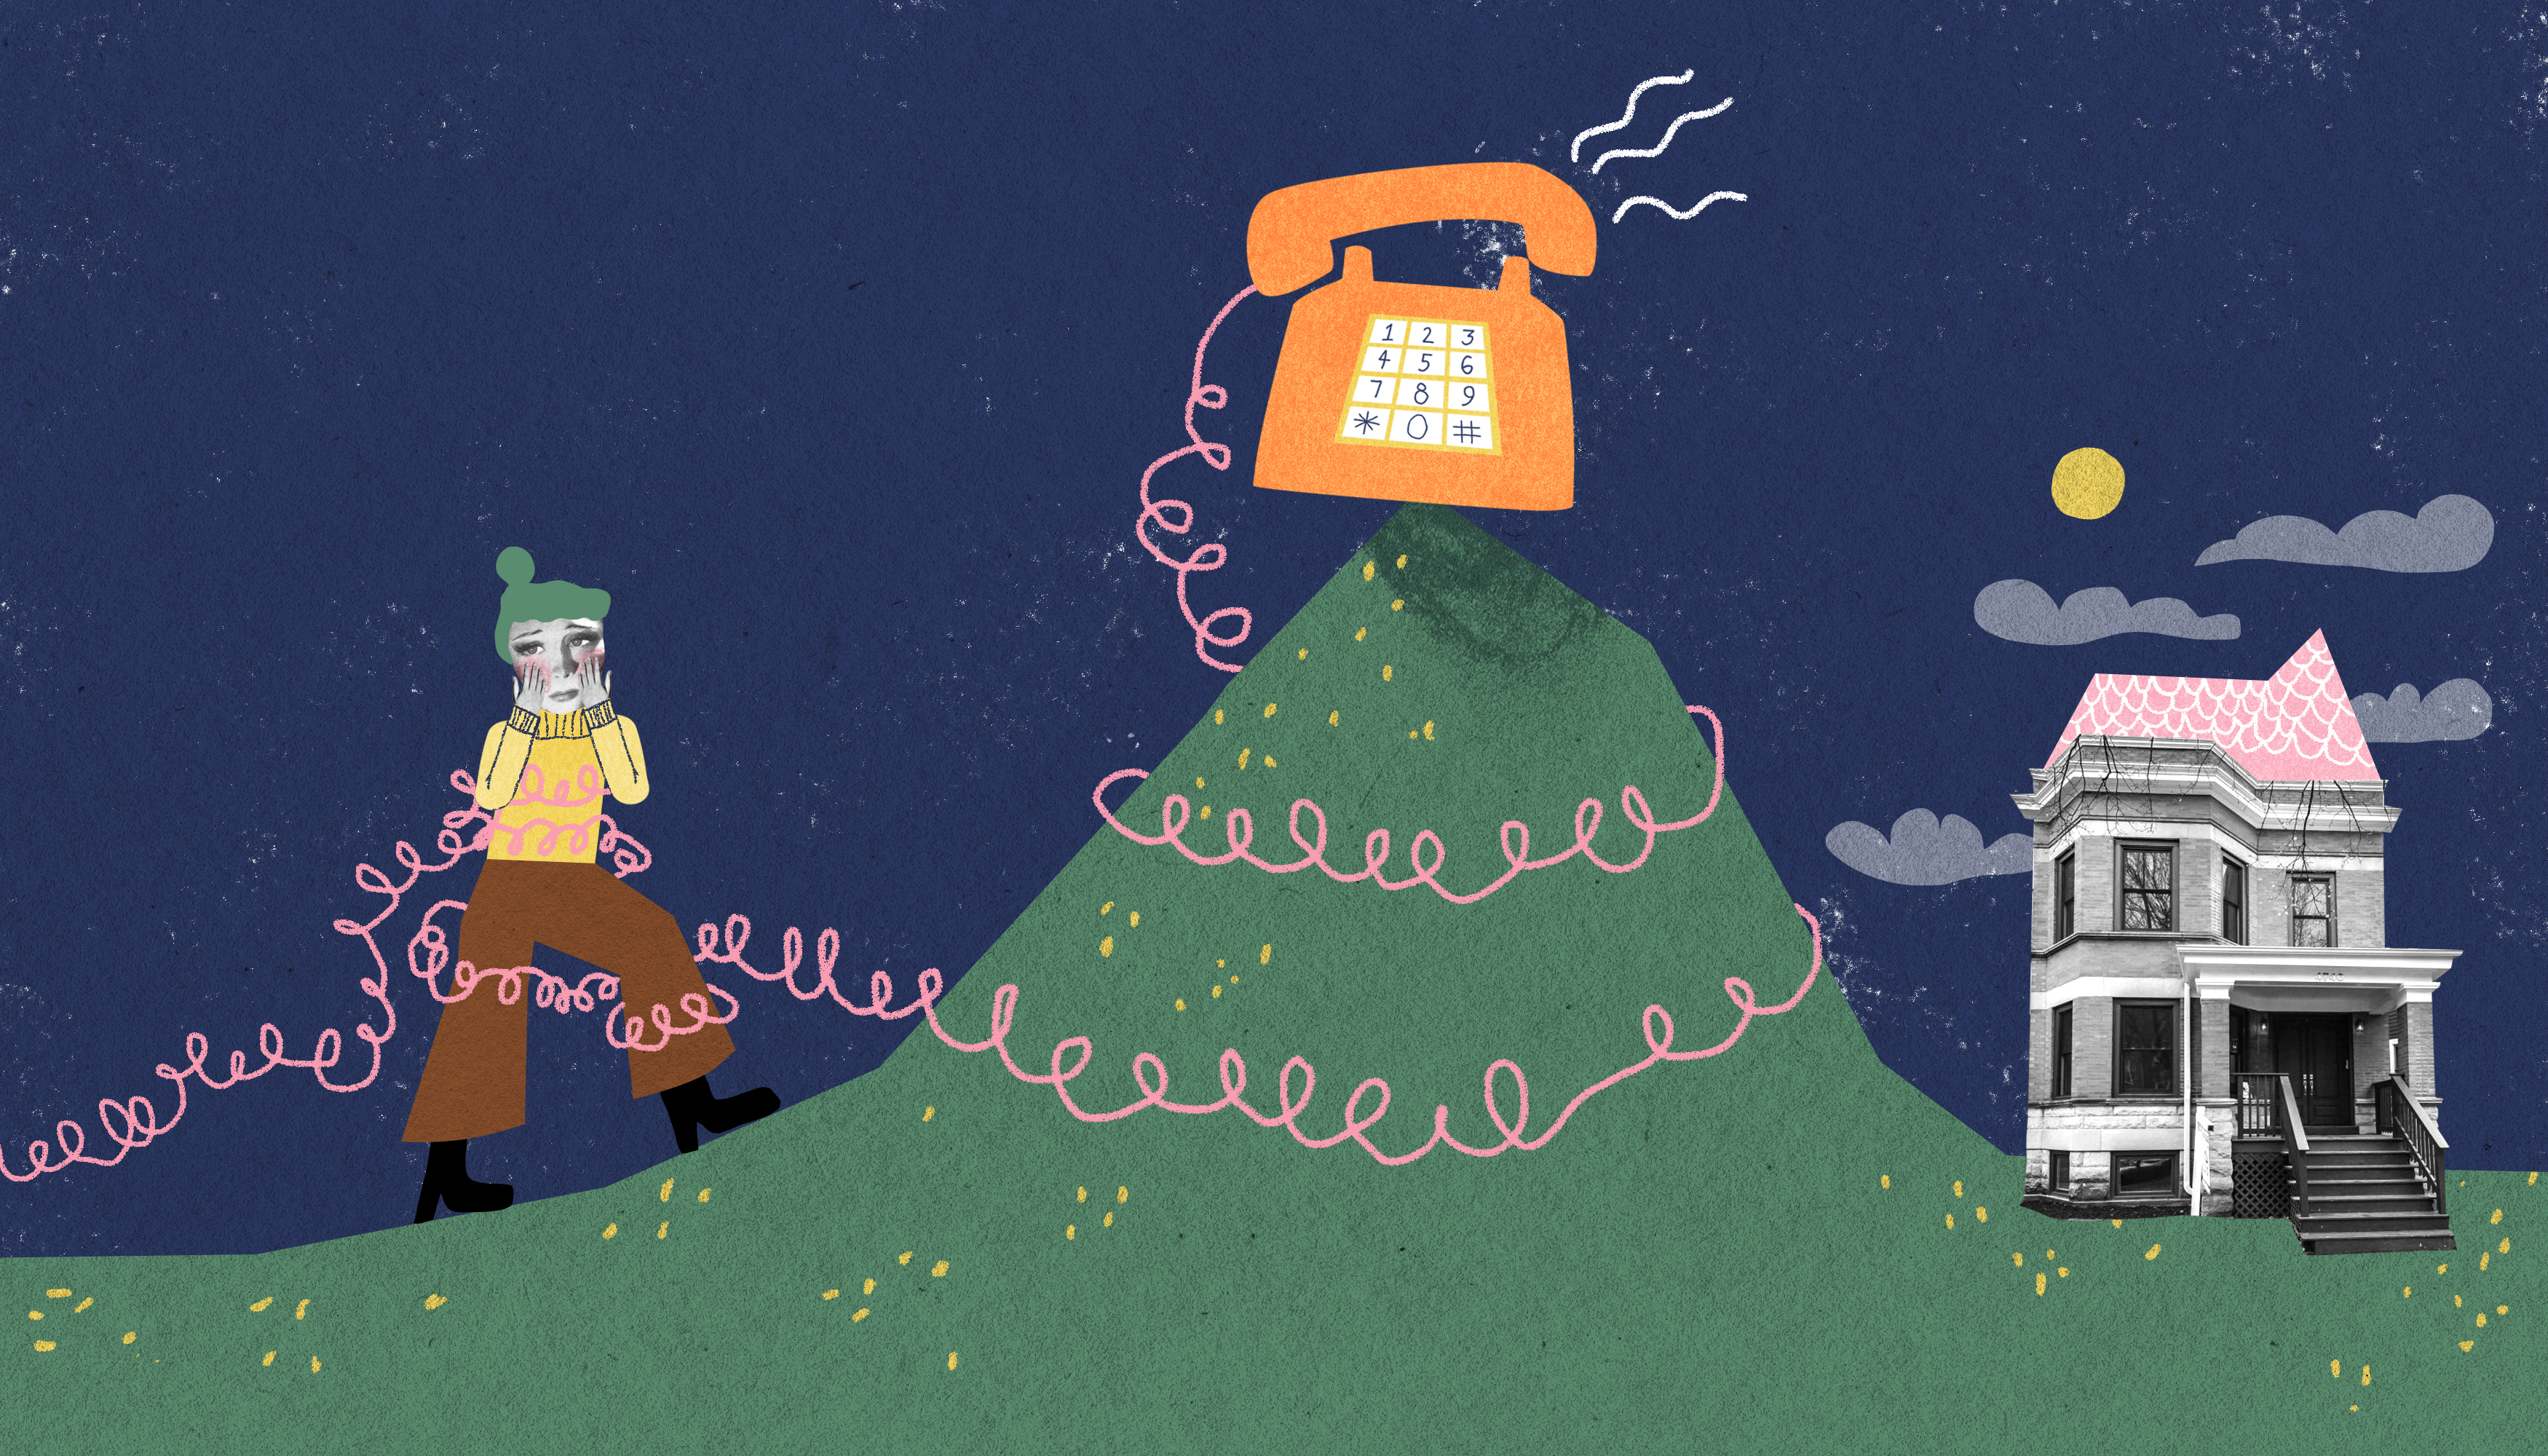 A woman tangled in a coiled telephone wire ascends a steep hill with a retro-looking phone at the top. On the other side of the hill is a beautiful rowhome. Illustration.